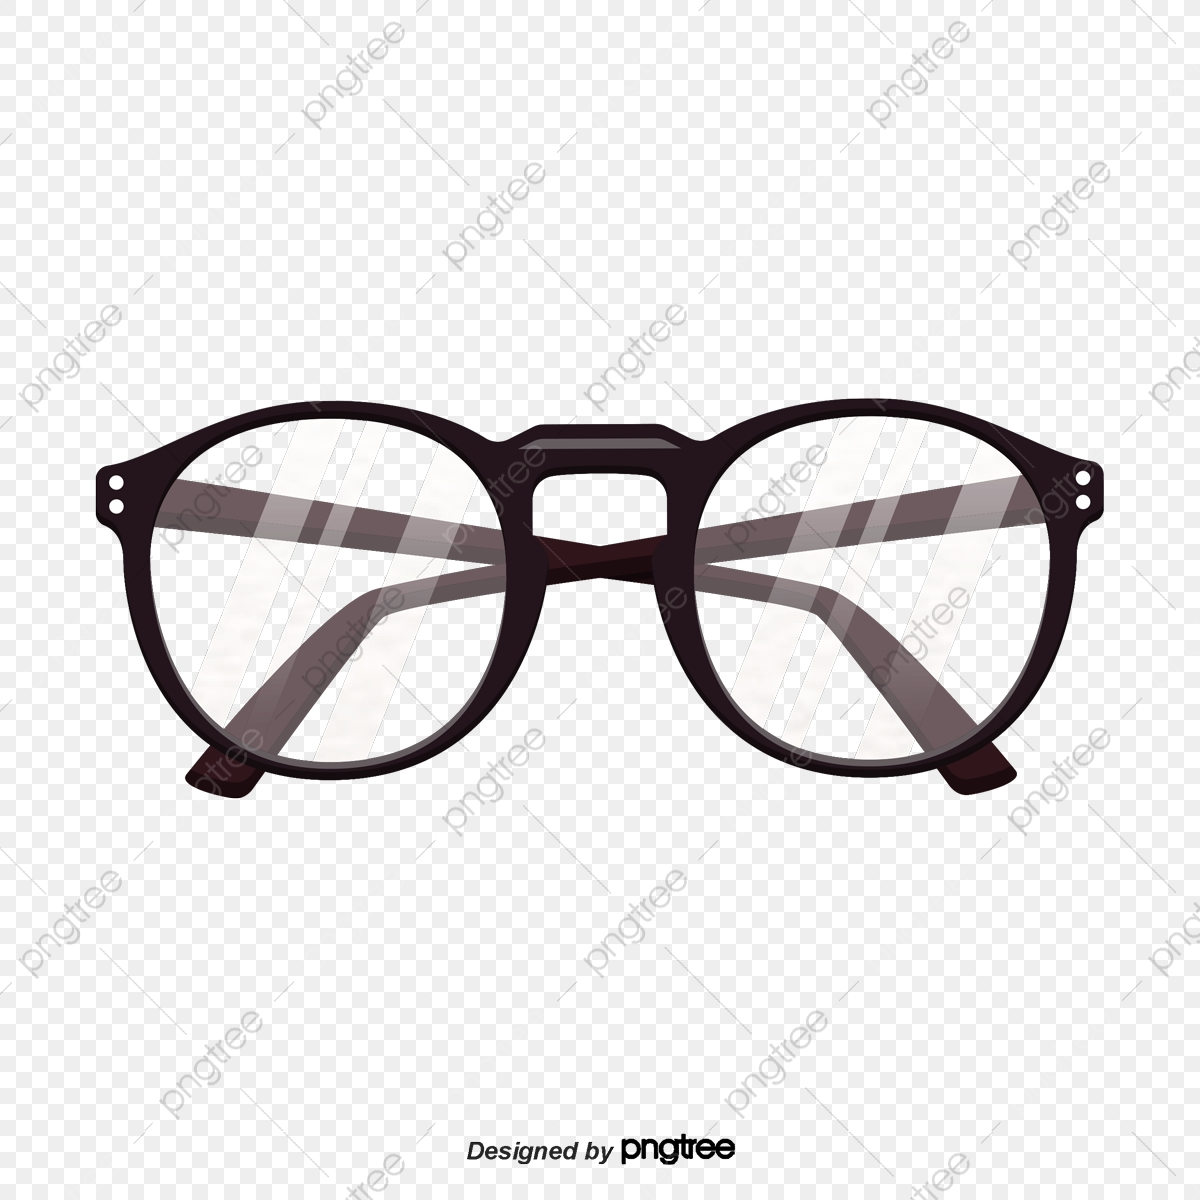 Glasses Png Images Vector And Psd Files Free Download On Pngtree Search more hd transparent glasses image on kindpng. https pngtree com freepng cartoon black rimmed glasses 4284084 html